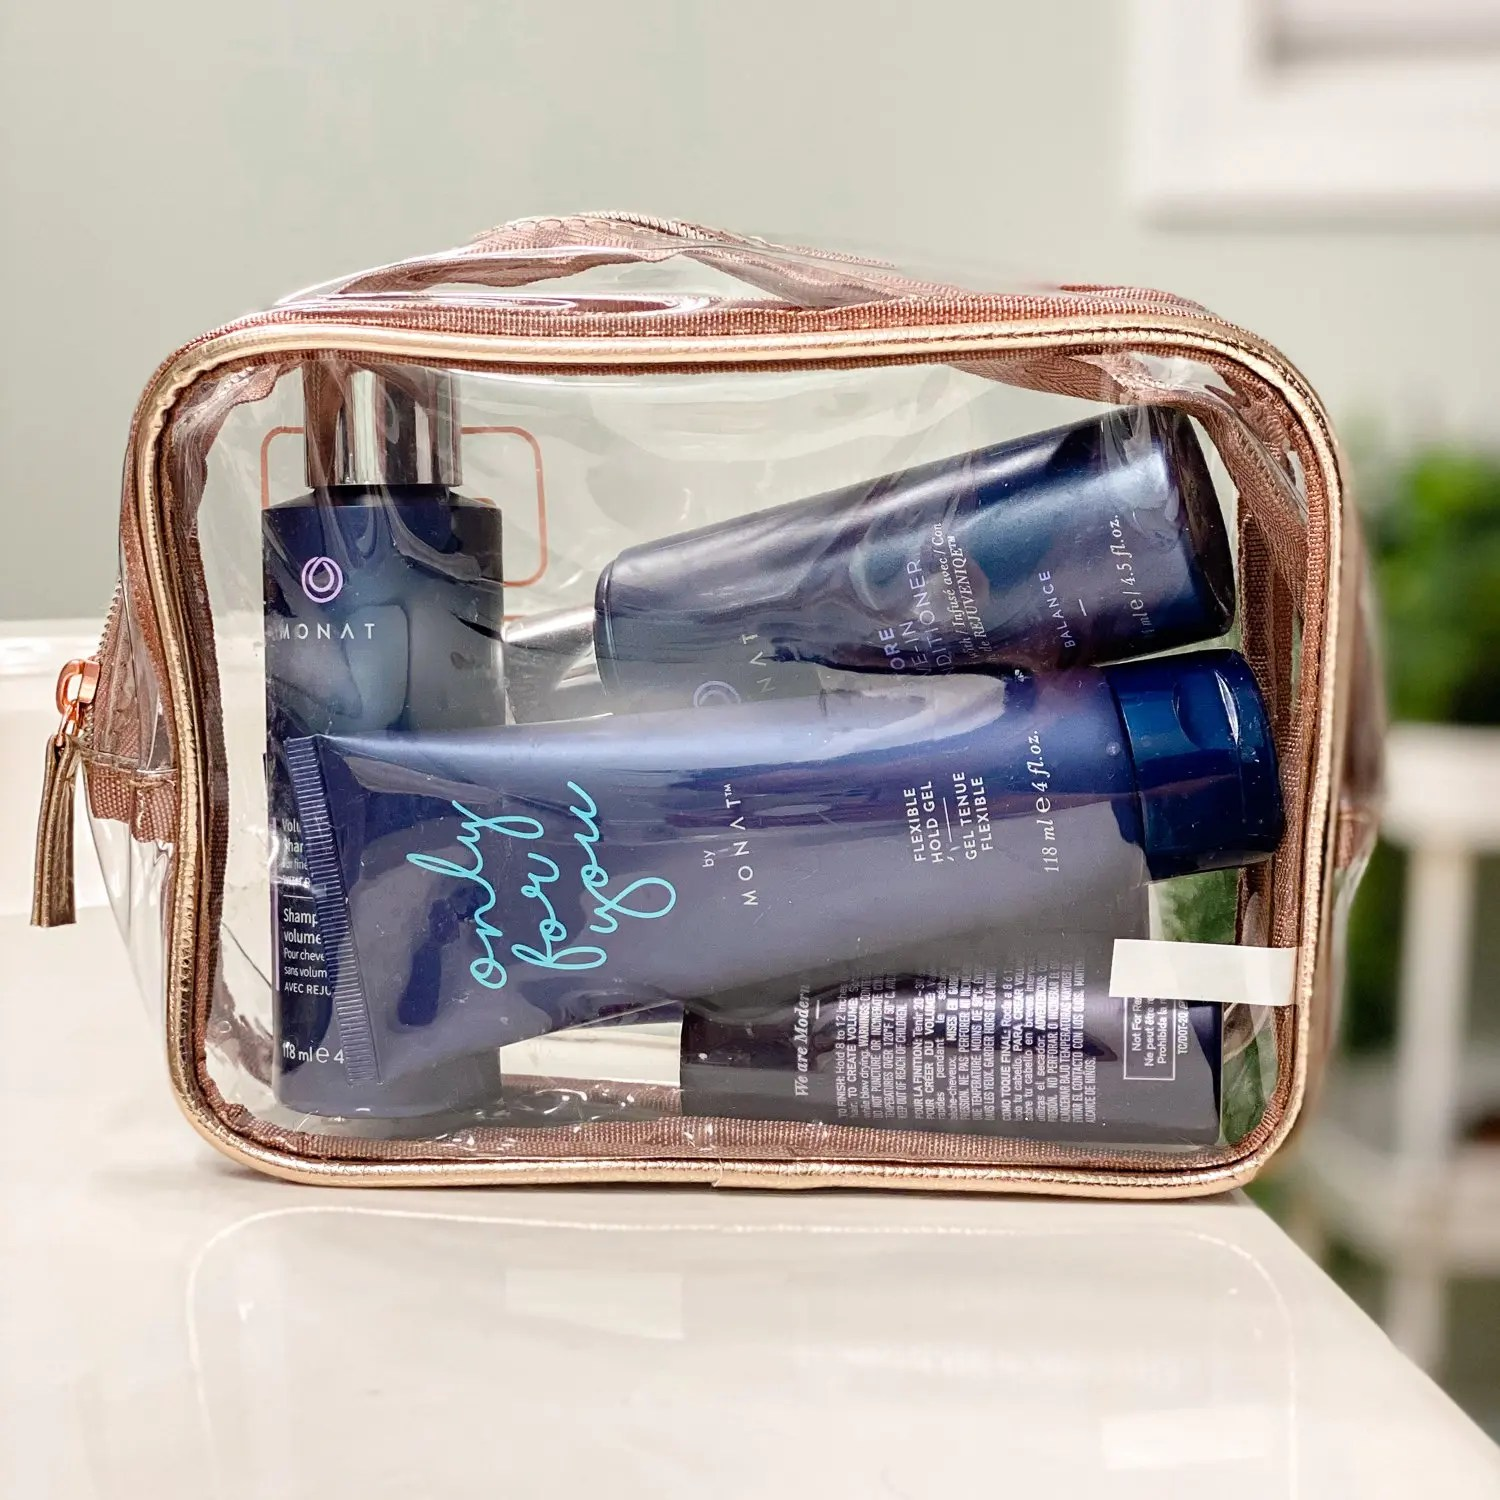 pretty rose gold clear bag for travel